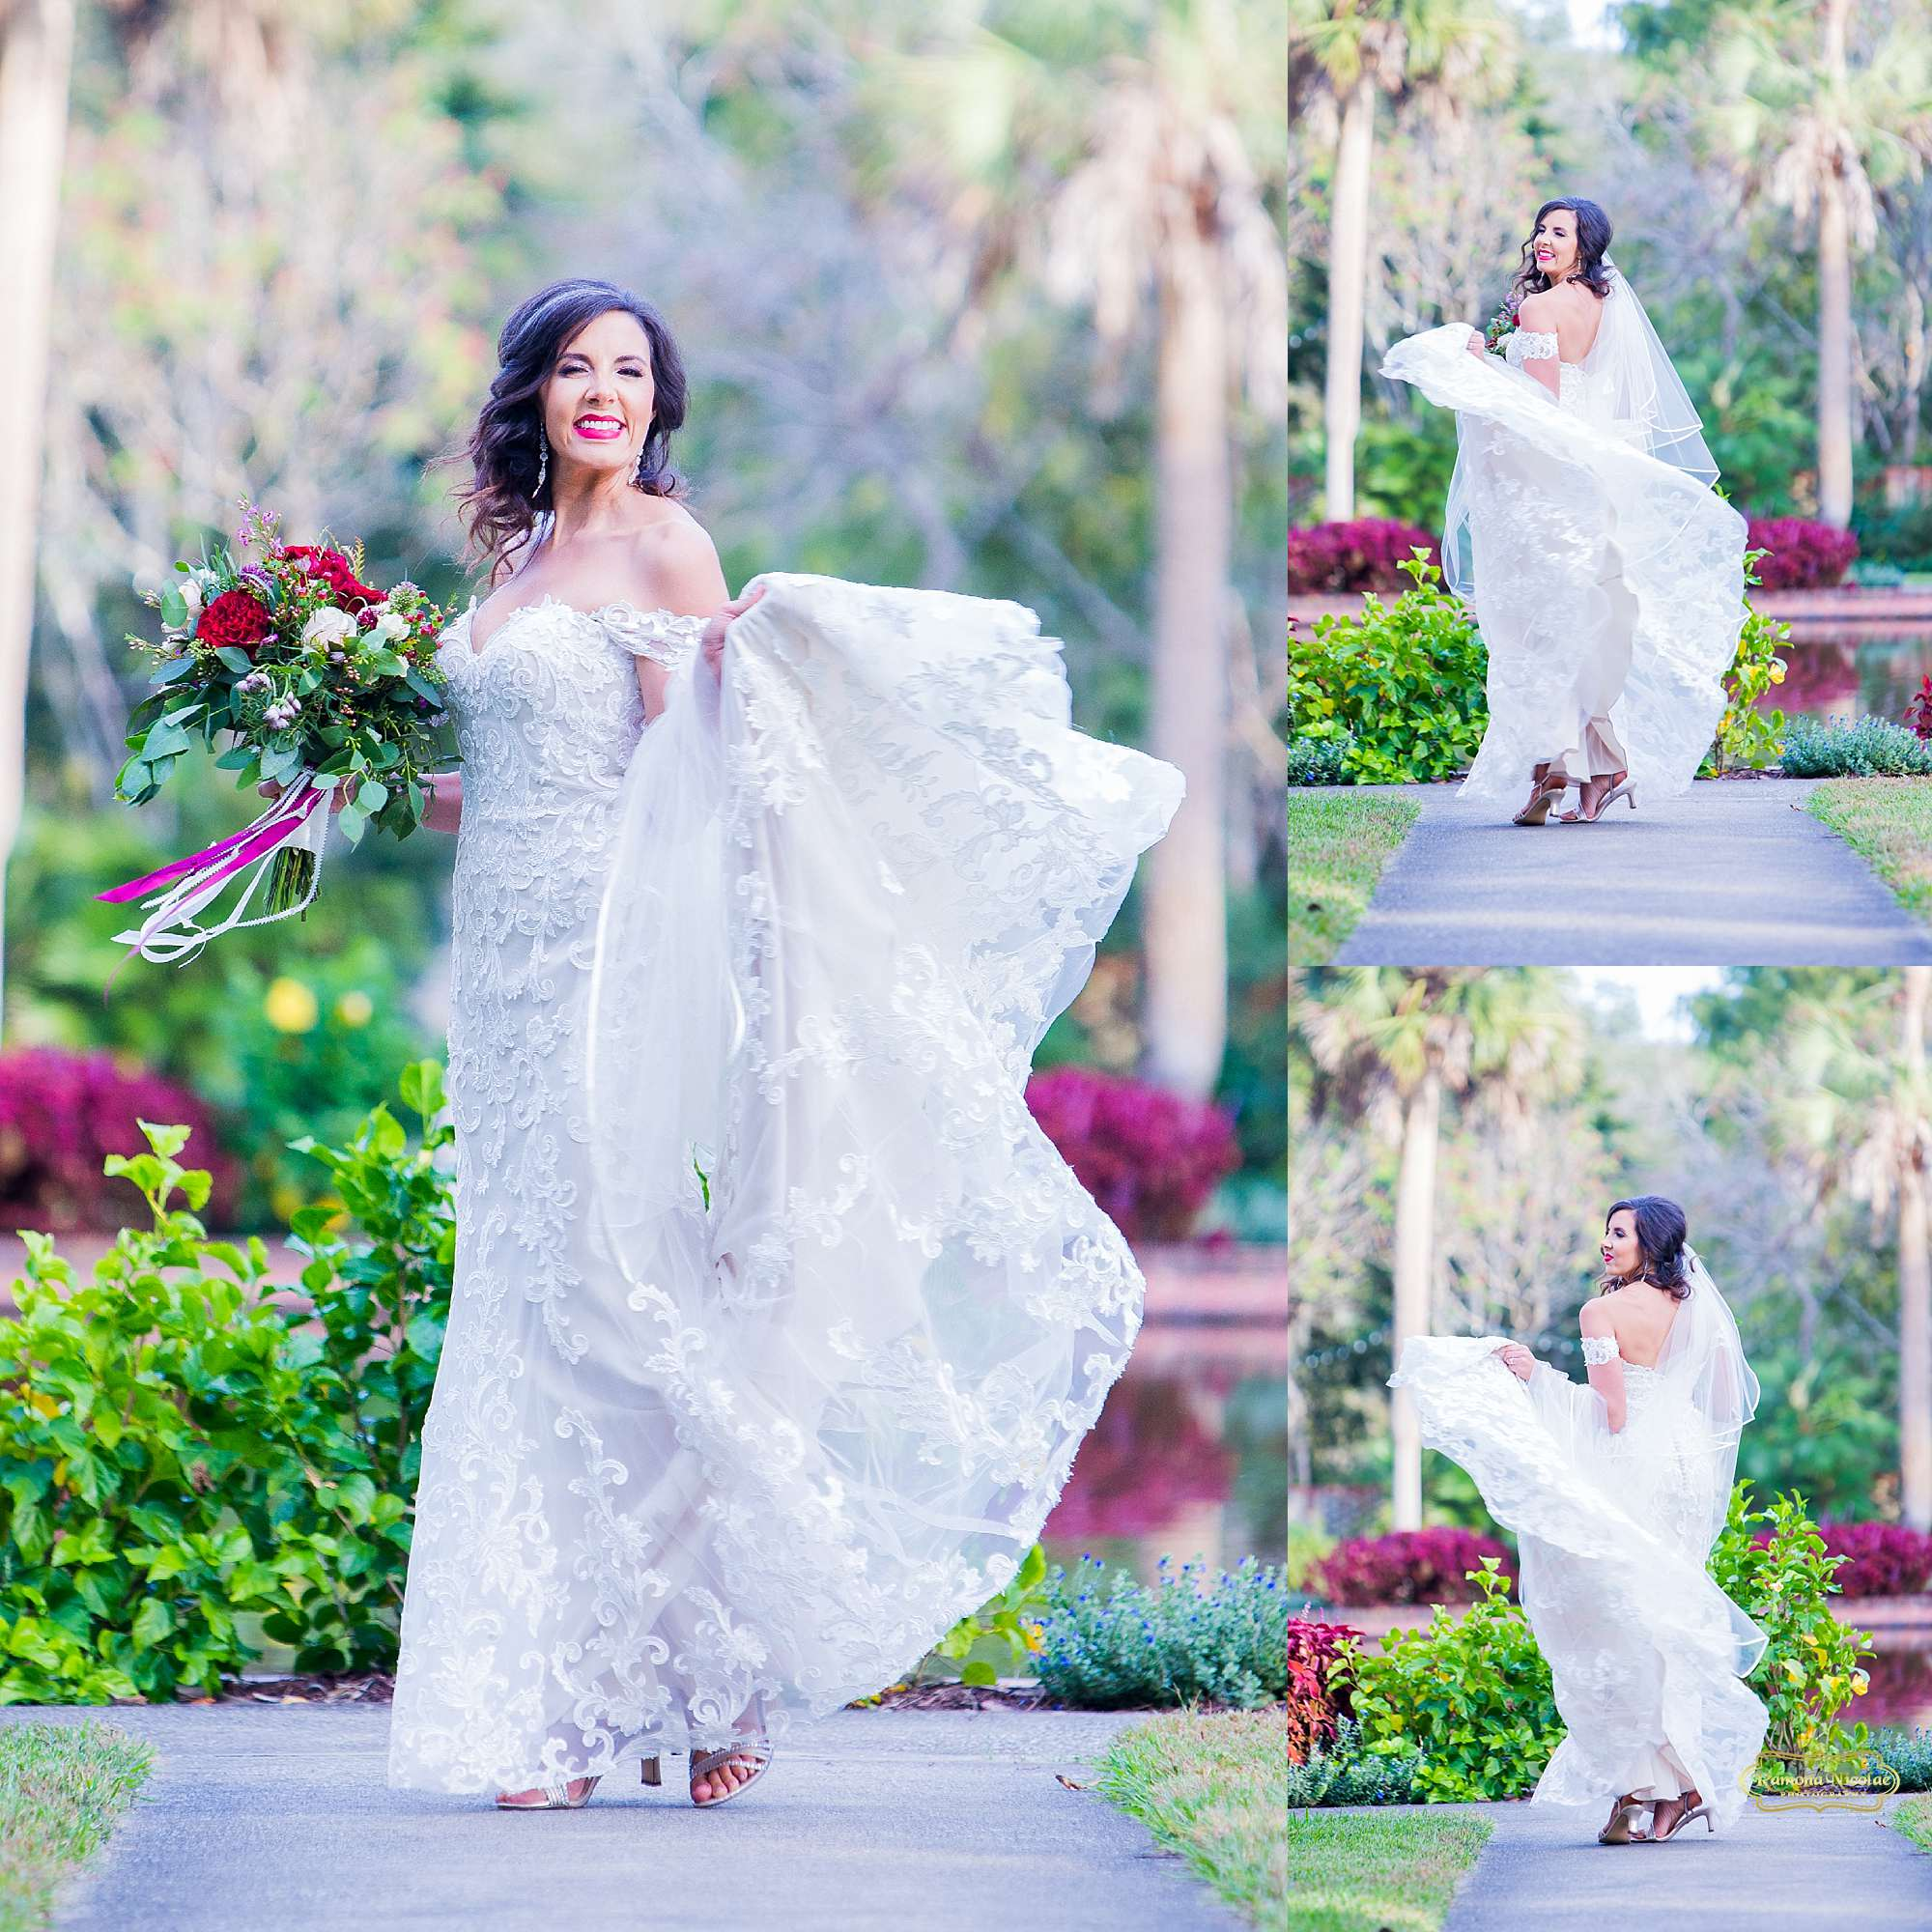 bride smiling and twirling spinning with red flowers and veil at brookgreen gardens during bridal session with ramona nicolae photography myrtle beach wedding photographer-5.jpg